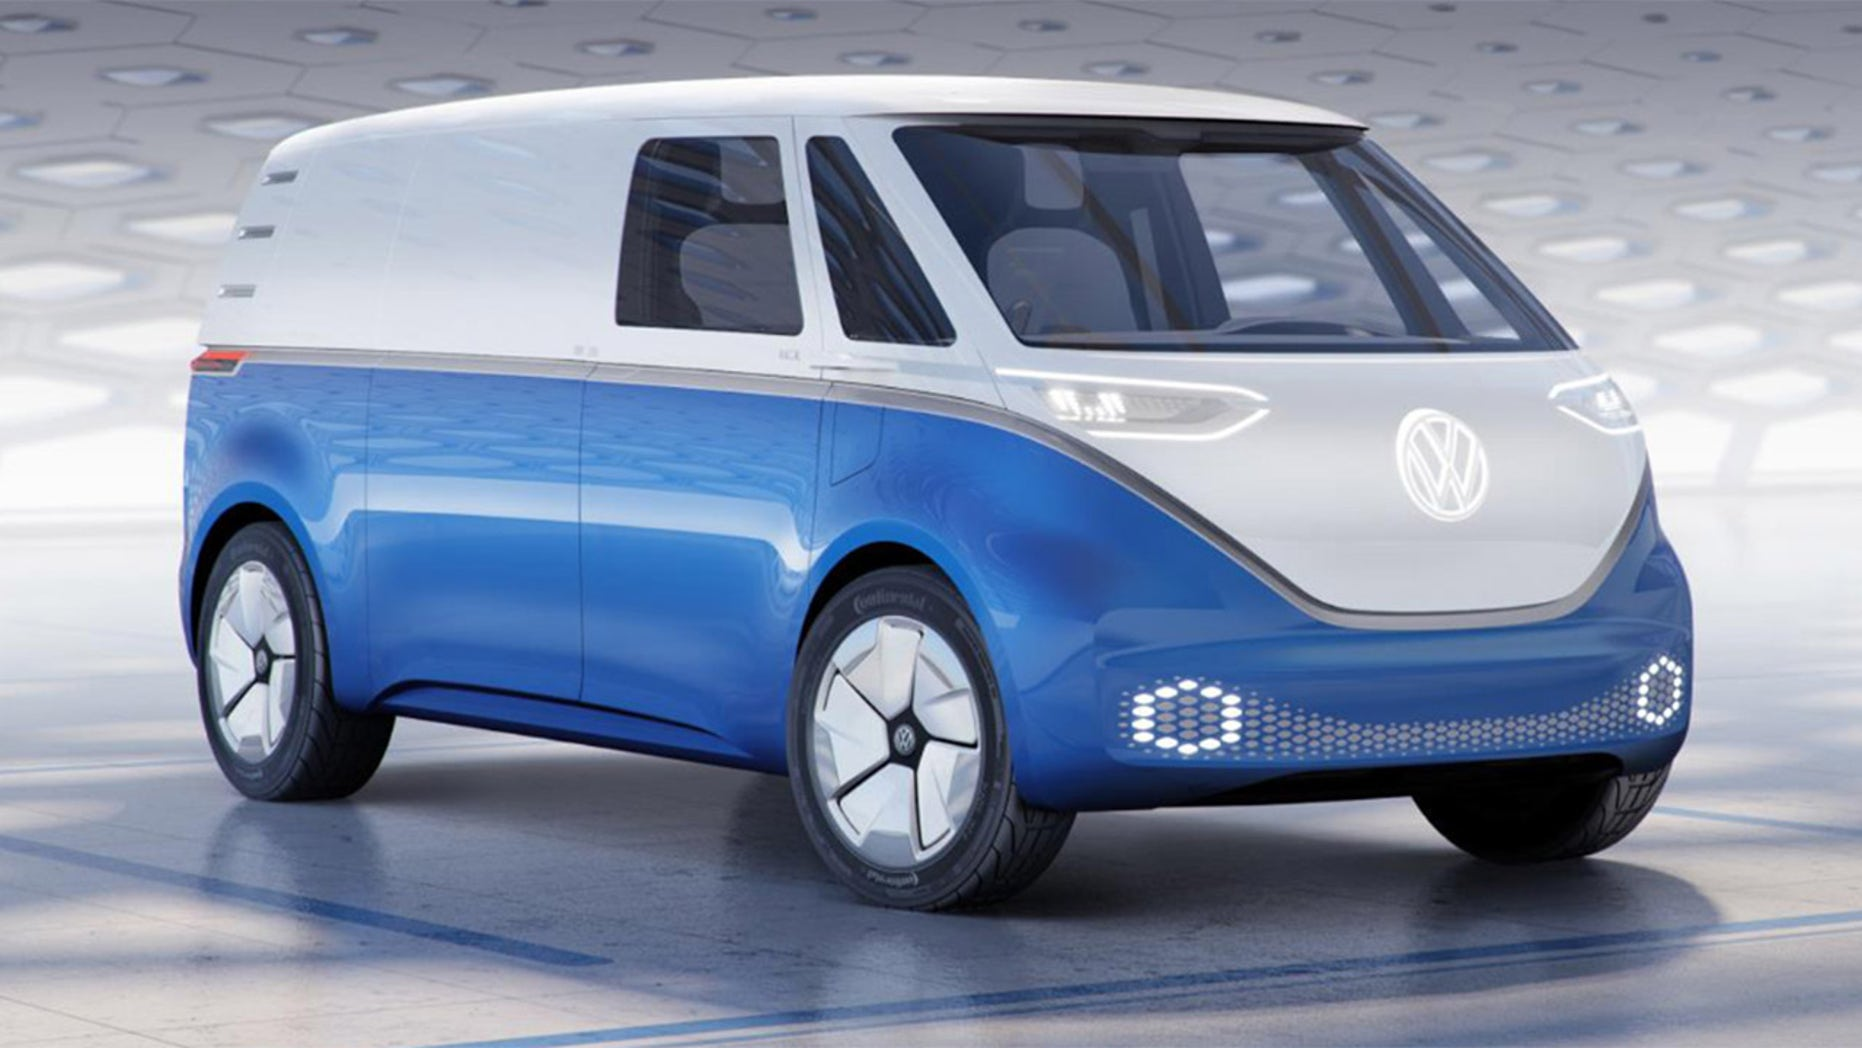 Volkswagen I D Buzz Cargo Electric Van Delivers The Goods With Retro Style